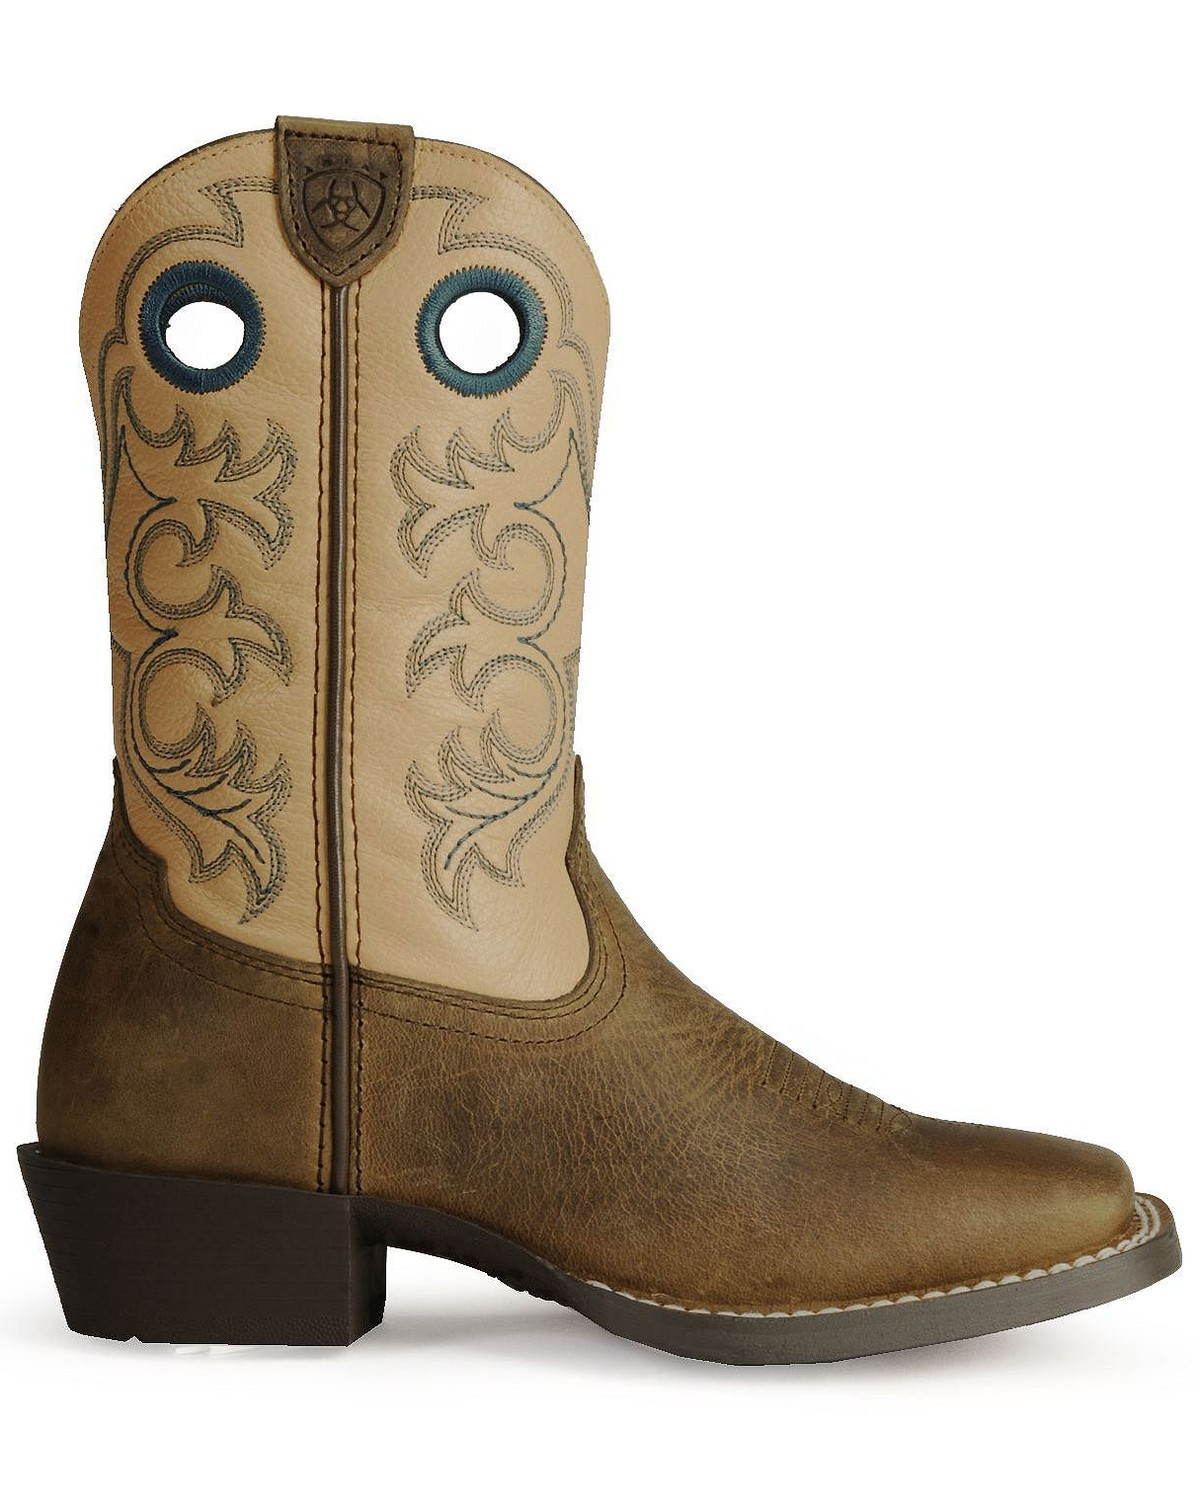 Ariat Youth Boys' Crossfire Cowboy Boots - Square Toe | Sheplers